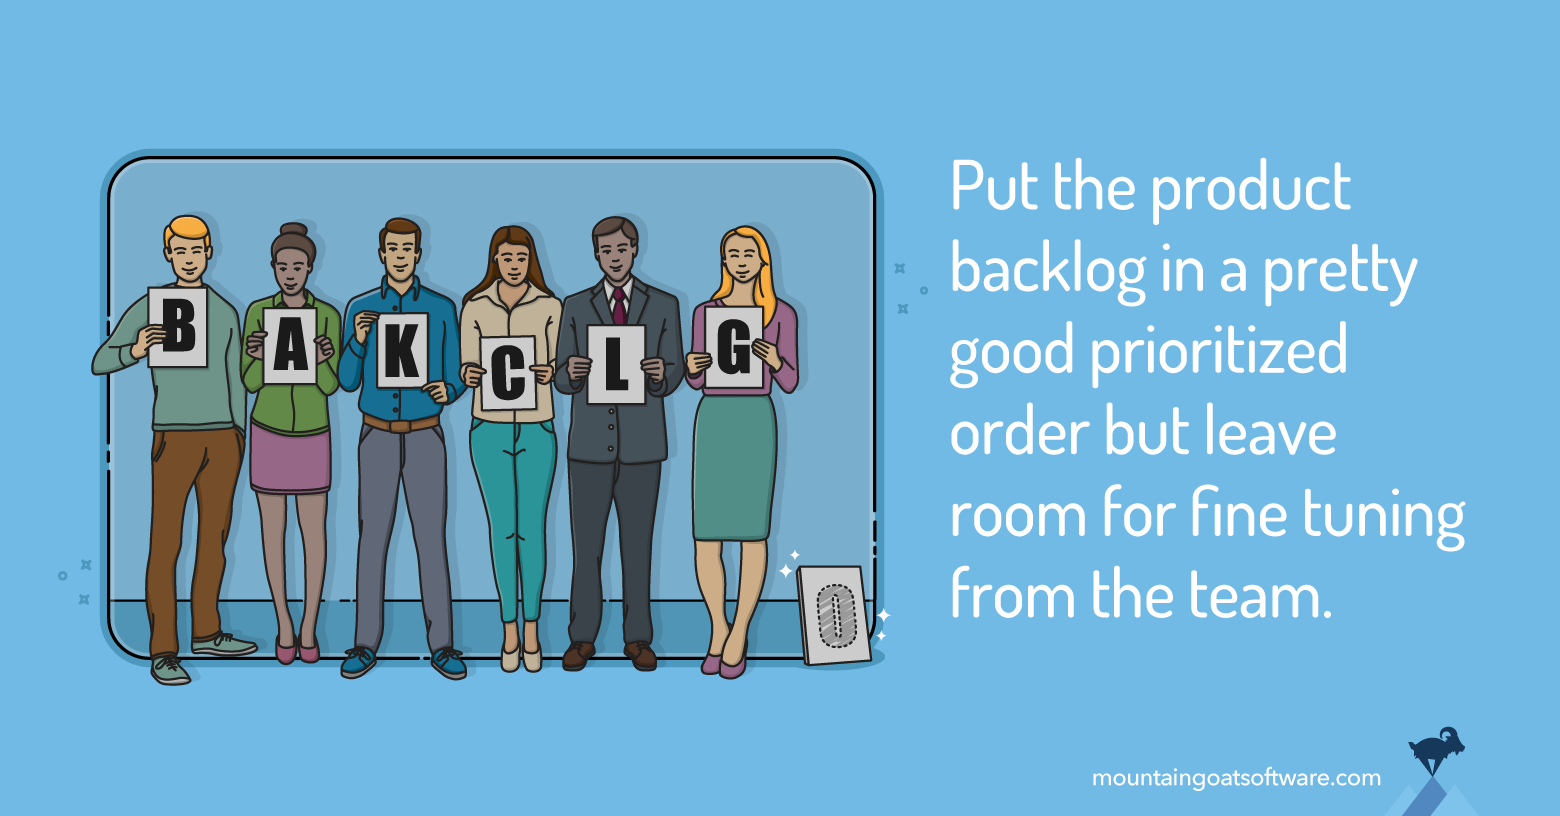 5 Reasons Product Owners Should Let Teams Work Out of Order